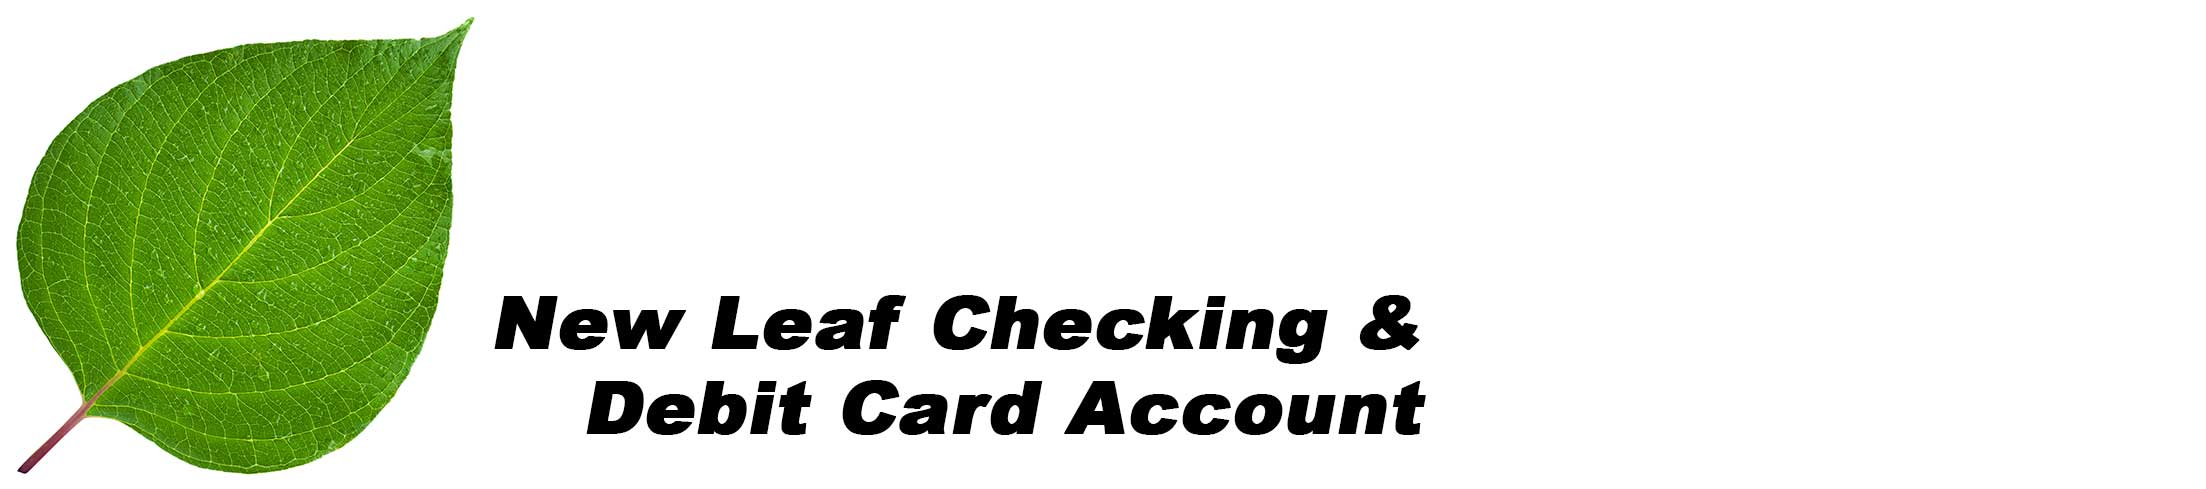 New Leaf Checking a Second Chance Account